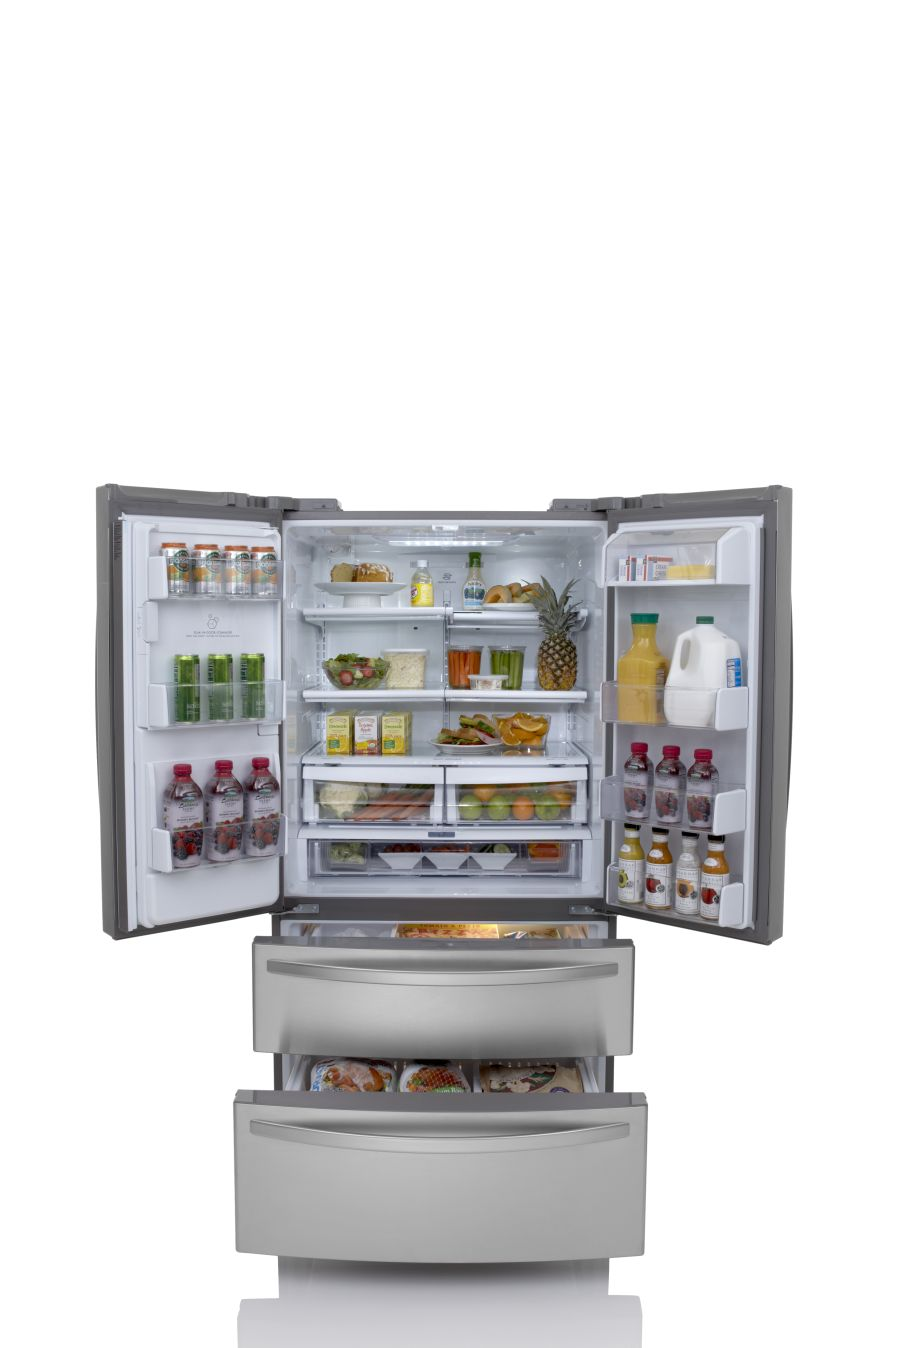 Kenmore 24.7 cu. ft. French-Door Bottom-Freezer Refrigerator - Stainless Steel